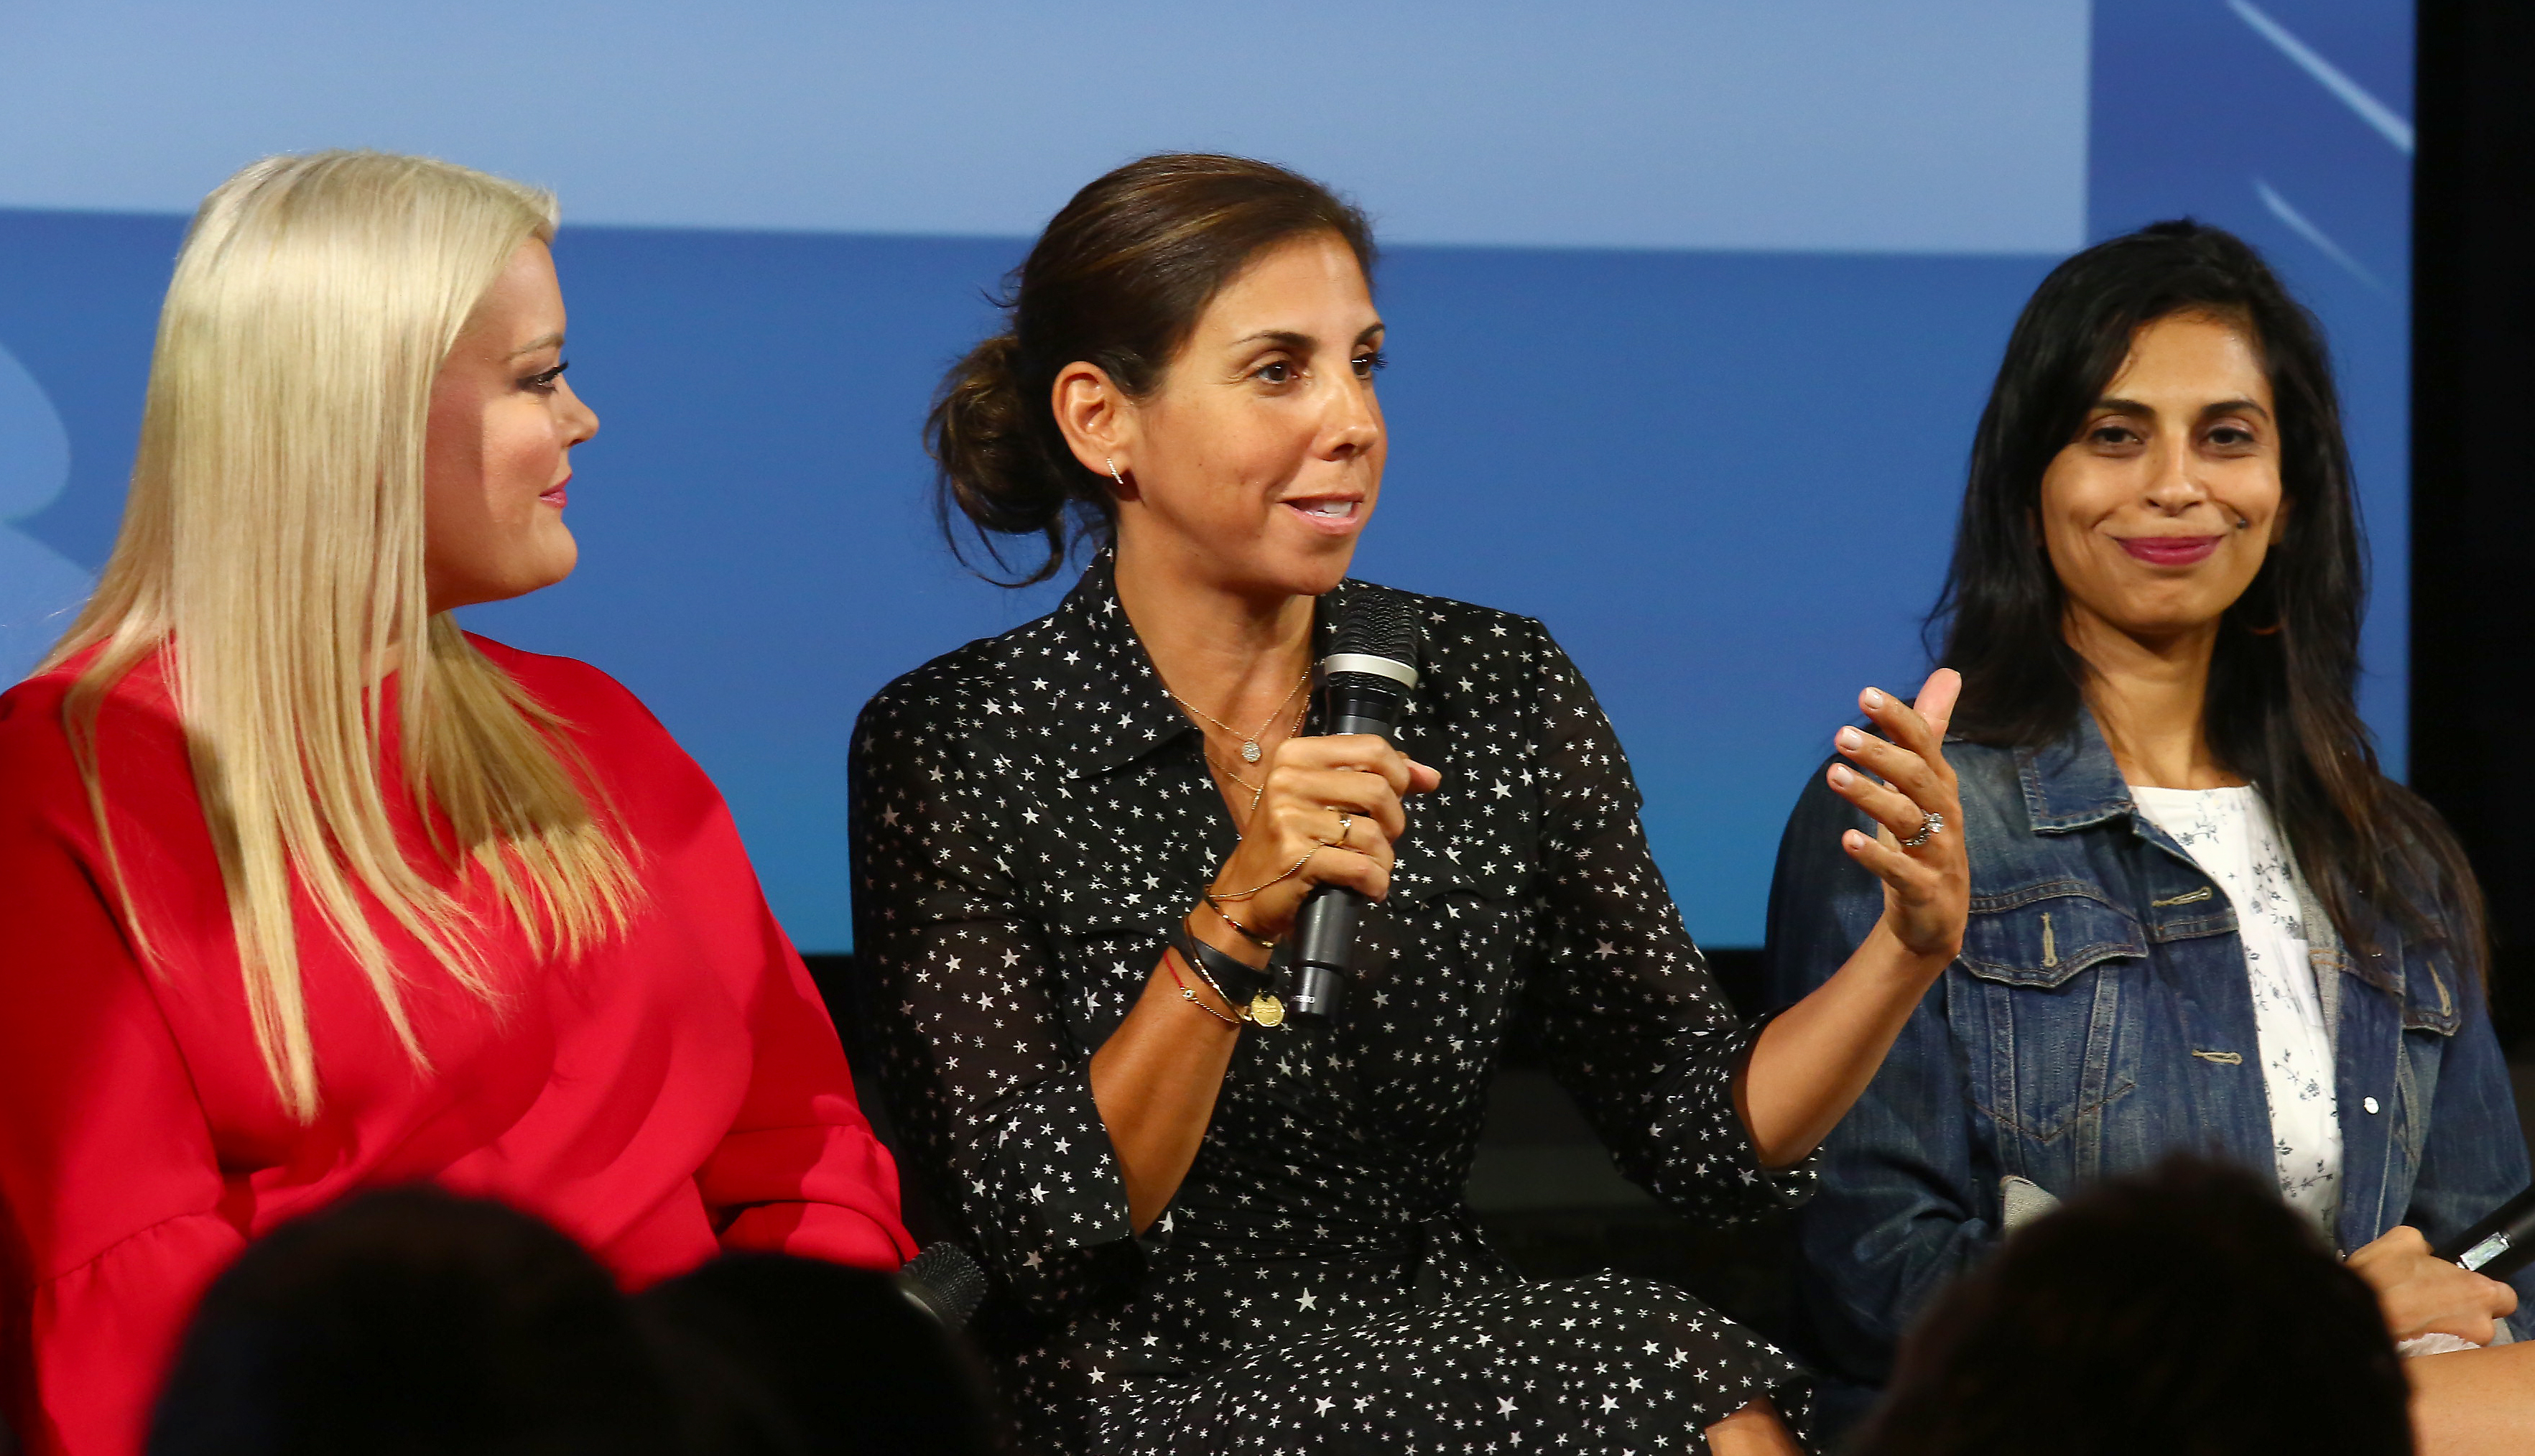 SoulCycle CEO Melanie Whelan participates in a panel event hosted by Keds & LOLA to celebrate Women's Equality Day on Wednesday, Aug. 23, 2017, in New York City.